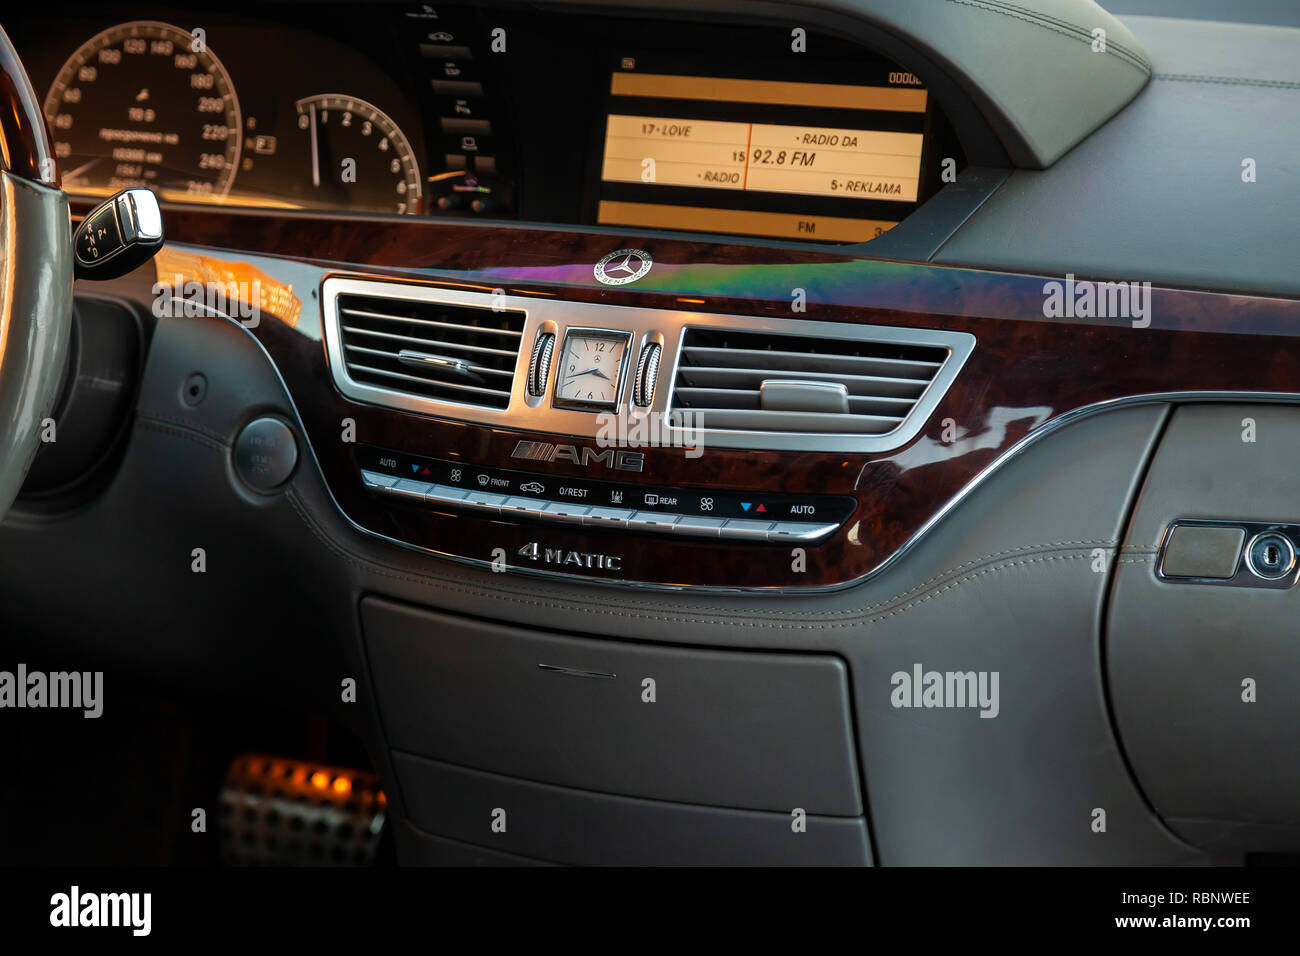 Novosibirsk, Russia - 08.01.2018: Inside the car inside a close-up of a multimedia system with the display on on the central control panel with wood a - Stock Image